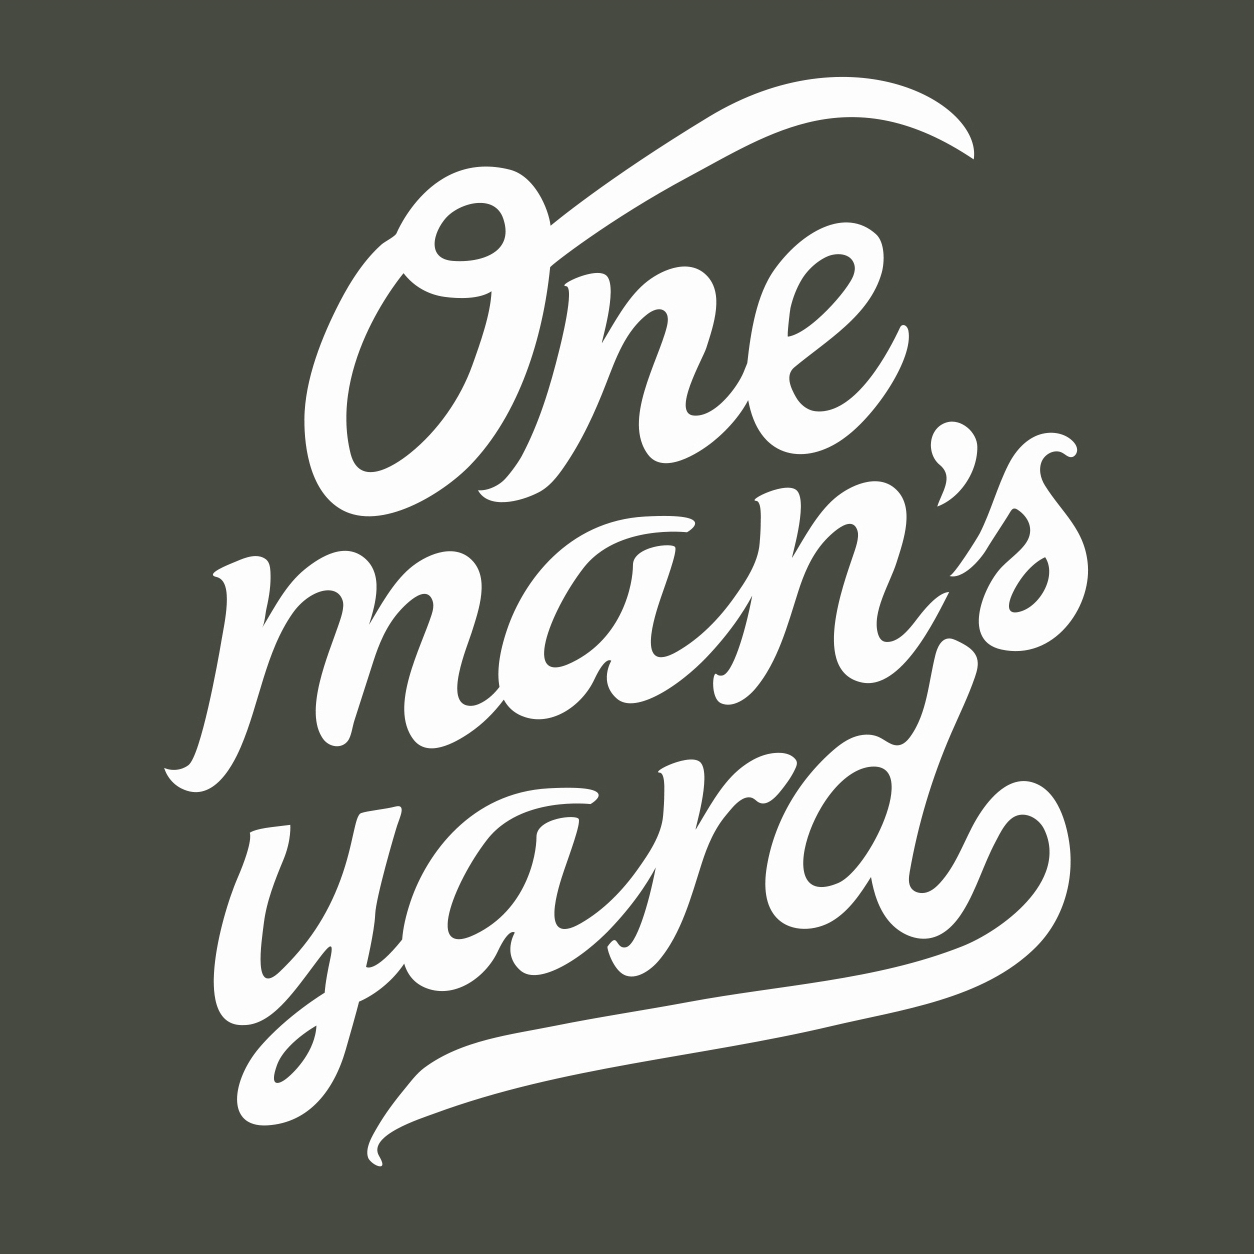 One Man's Yard